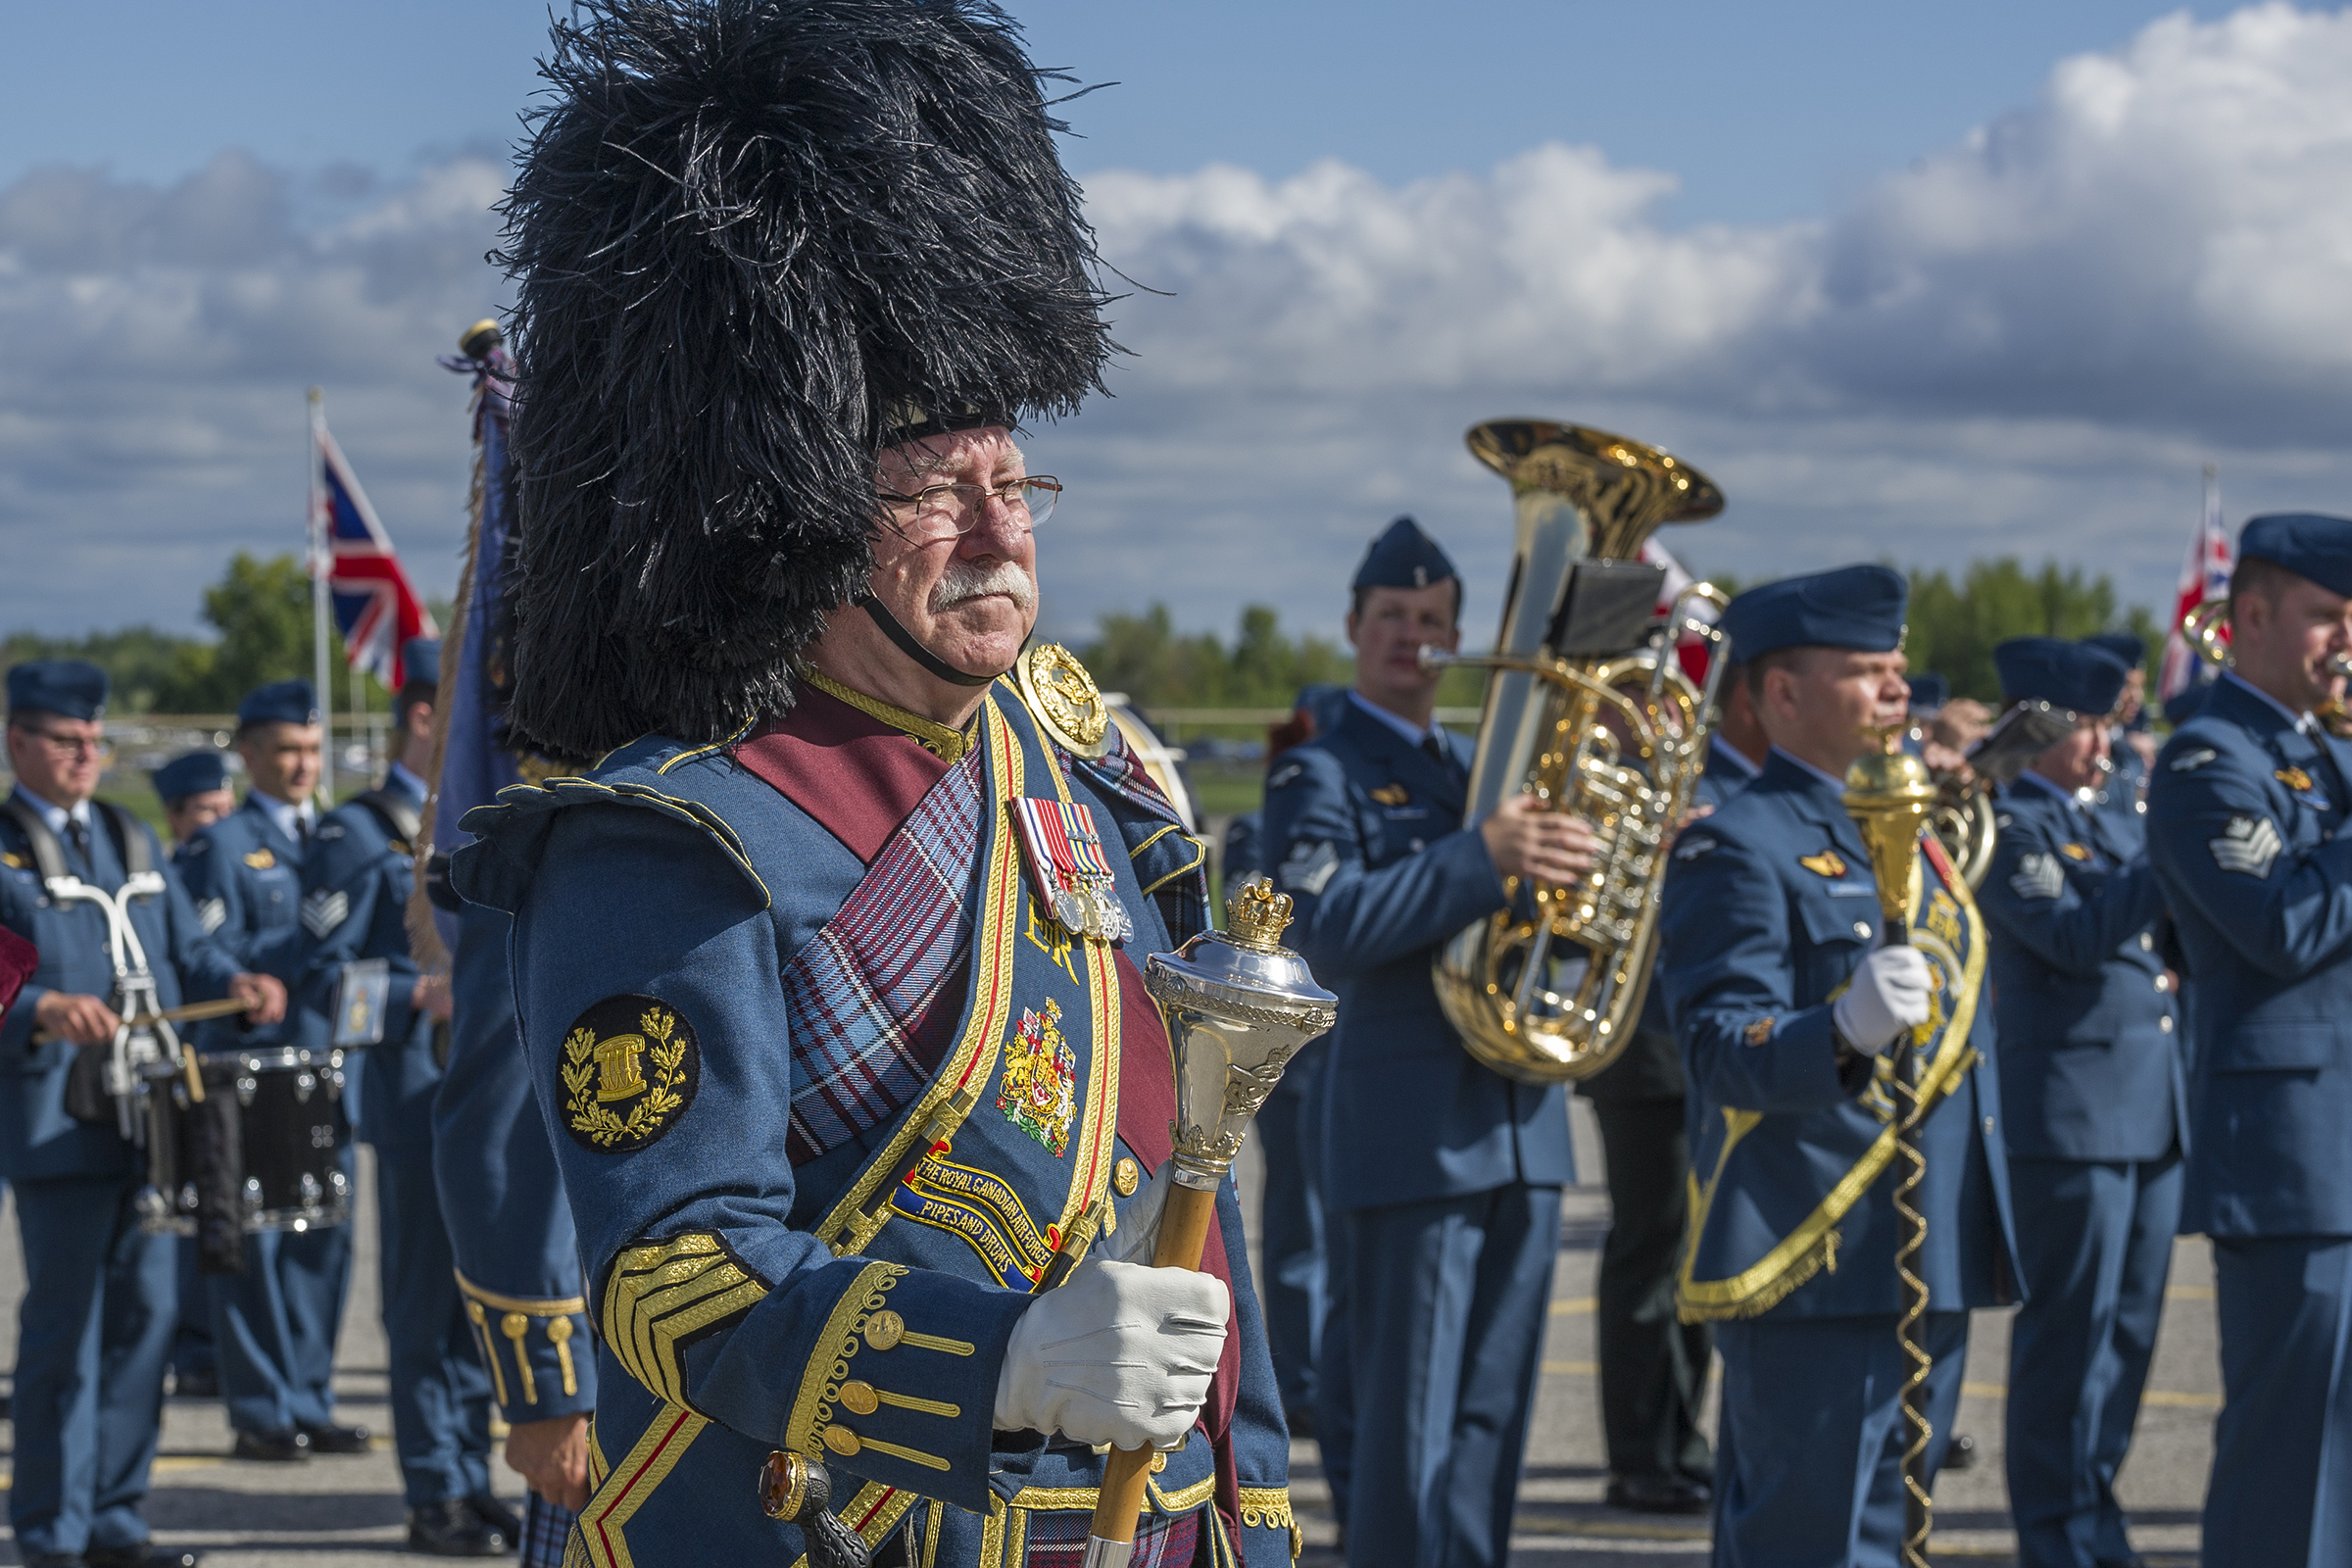 Drum Major Harold McDermott of the RCAF Pipes and Drums stands at the ready along with the Central Band of the Canadian Armed Forces during the national Battle of Britain ceremony held September 18, 2016, at the Canada Aviation and Space Museum in Ottawa. PHOTO: Corporal Alana Morin, FA03-2016-0032-033